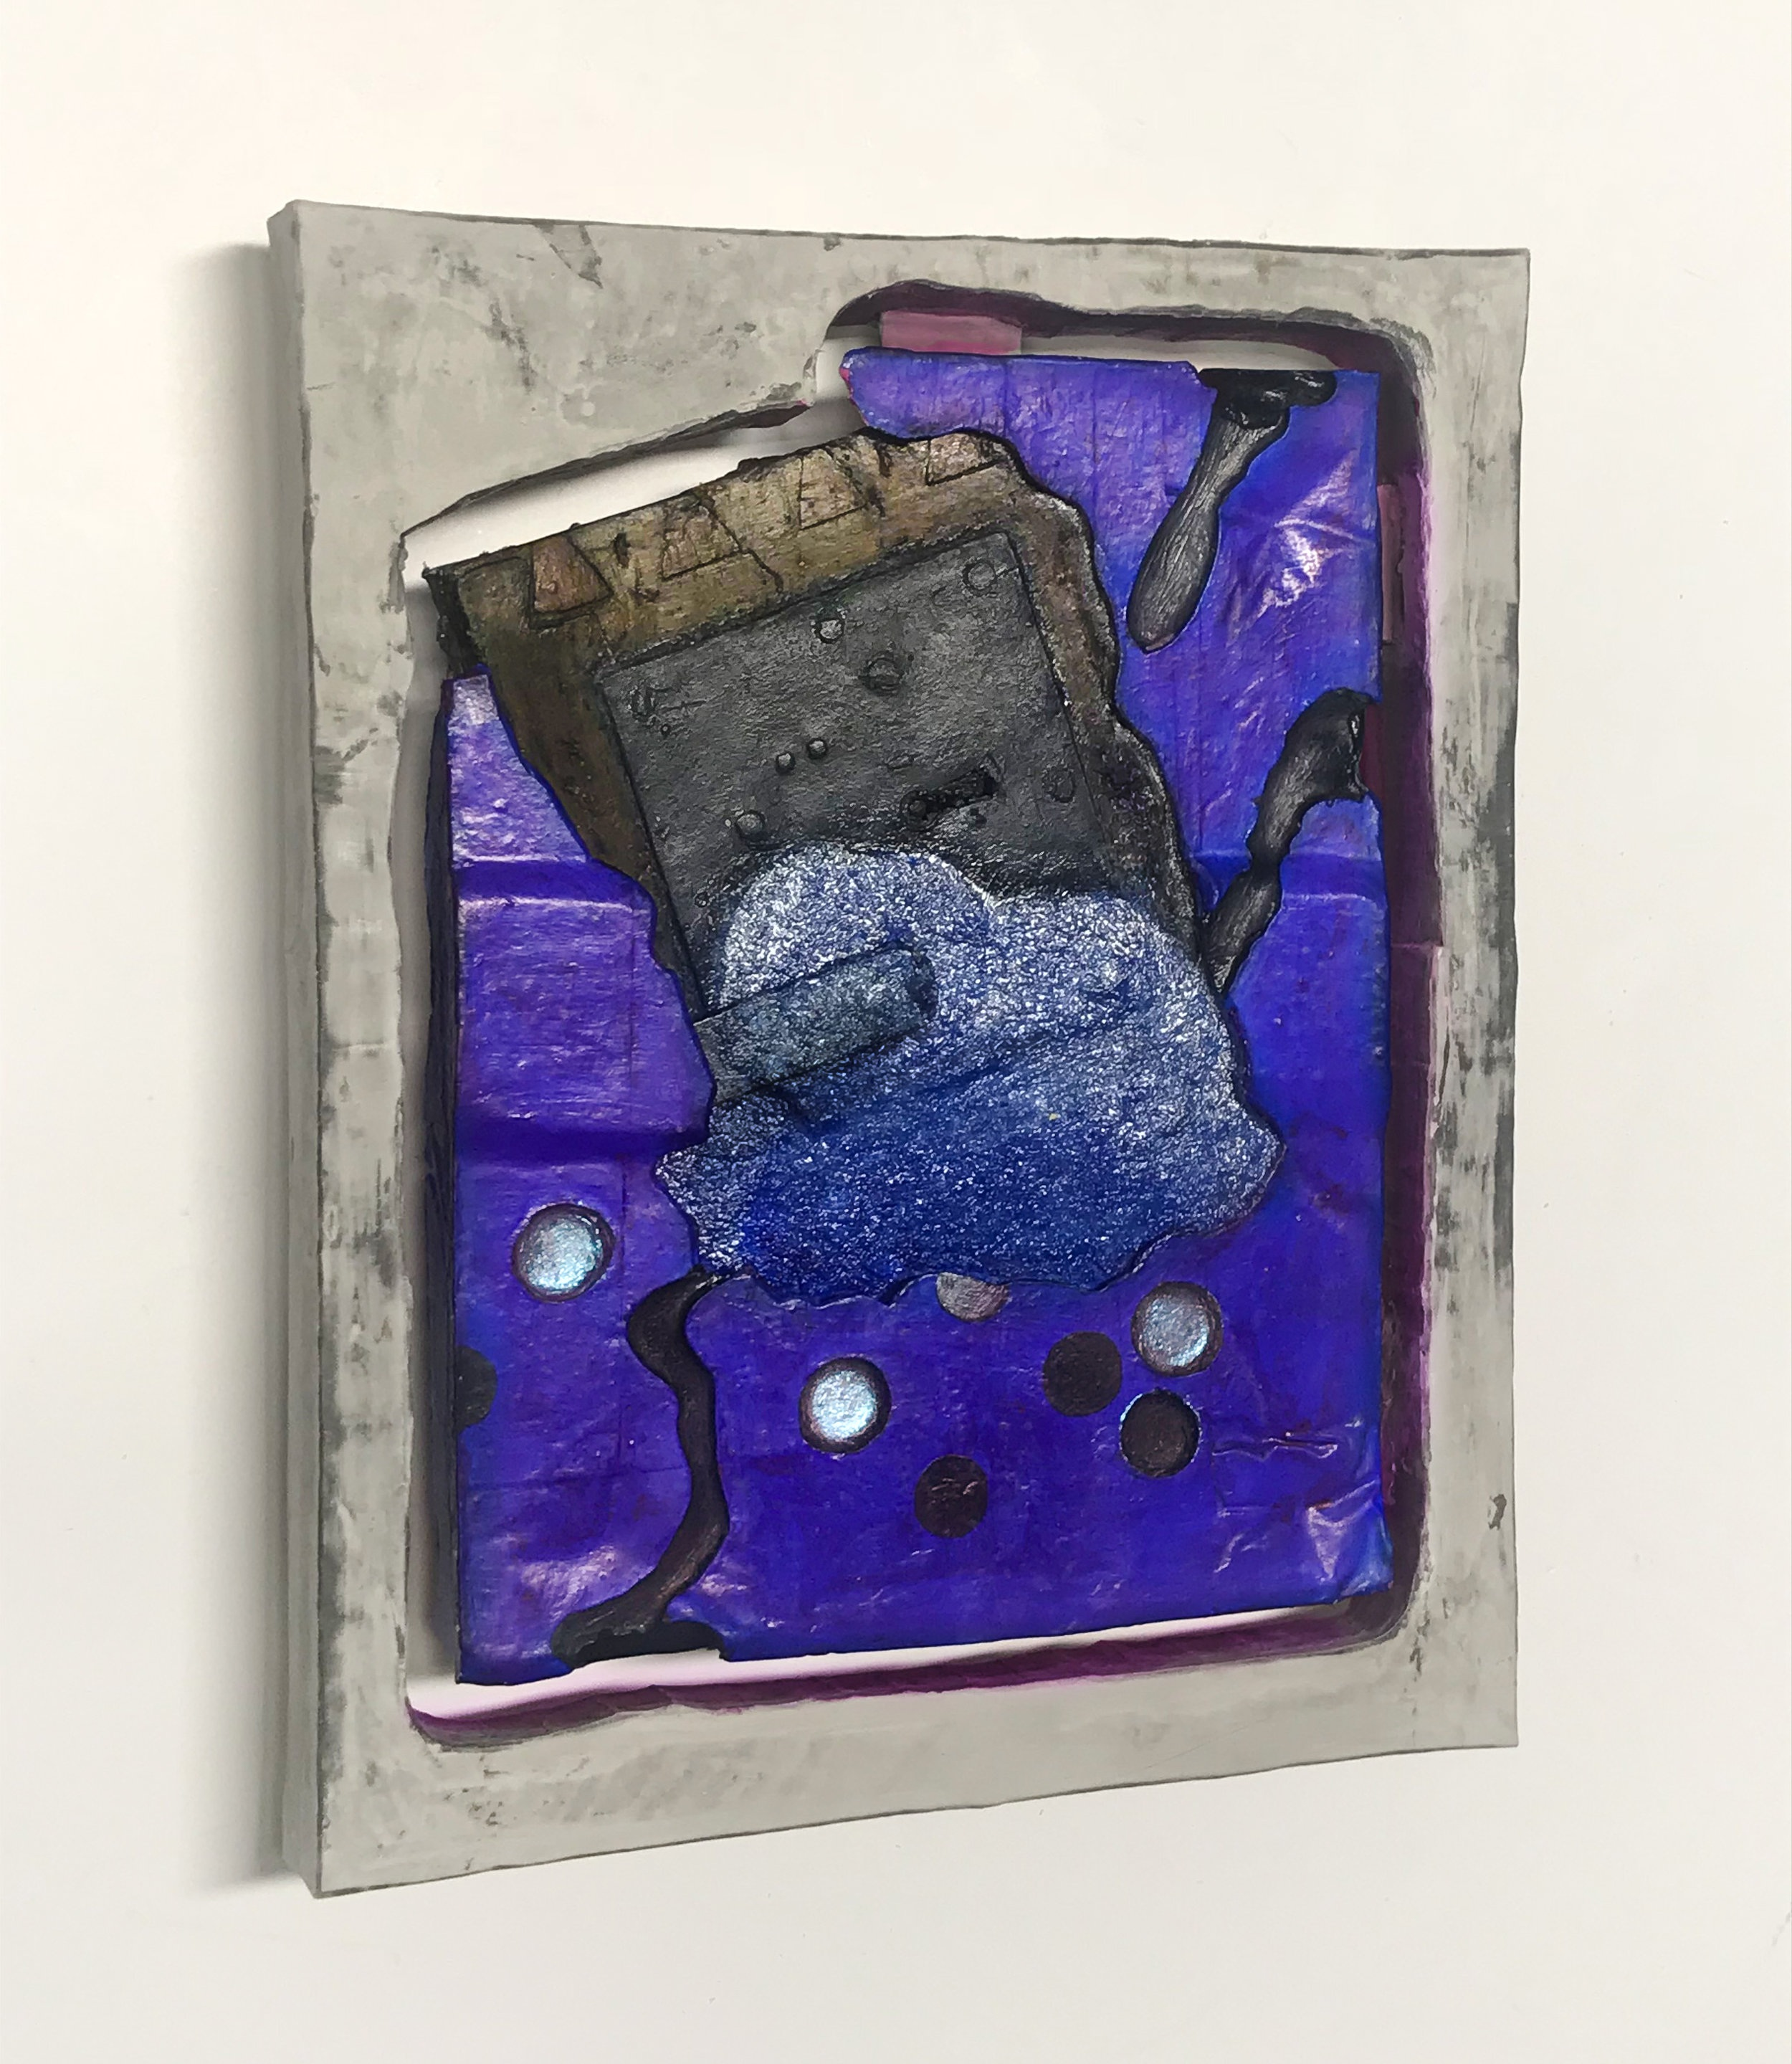 Tithen , 2018, Hydraulic expansion cement, acrylic, mica, glass, wood, adhesive, fiberglass,microcrystalline wax polish, 12wx14tx2d inches.